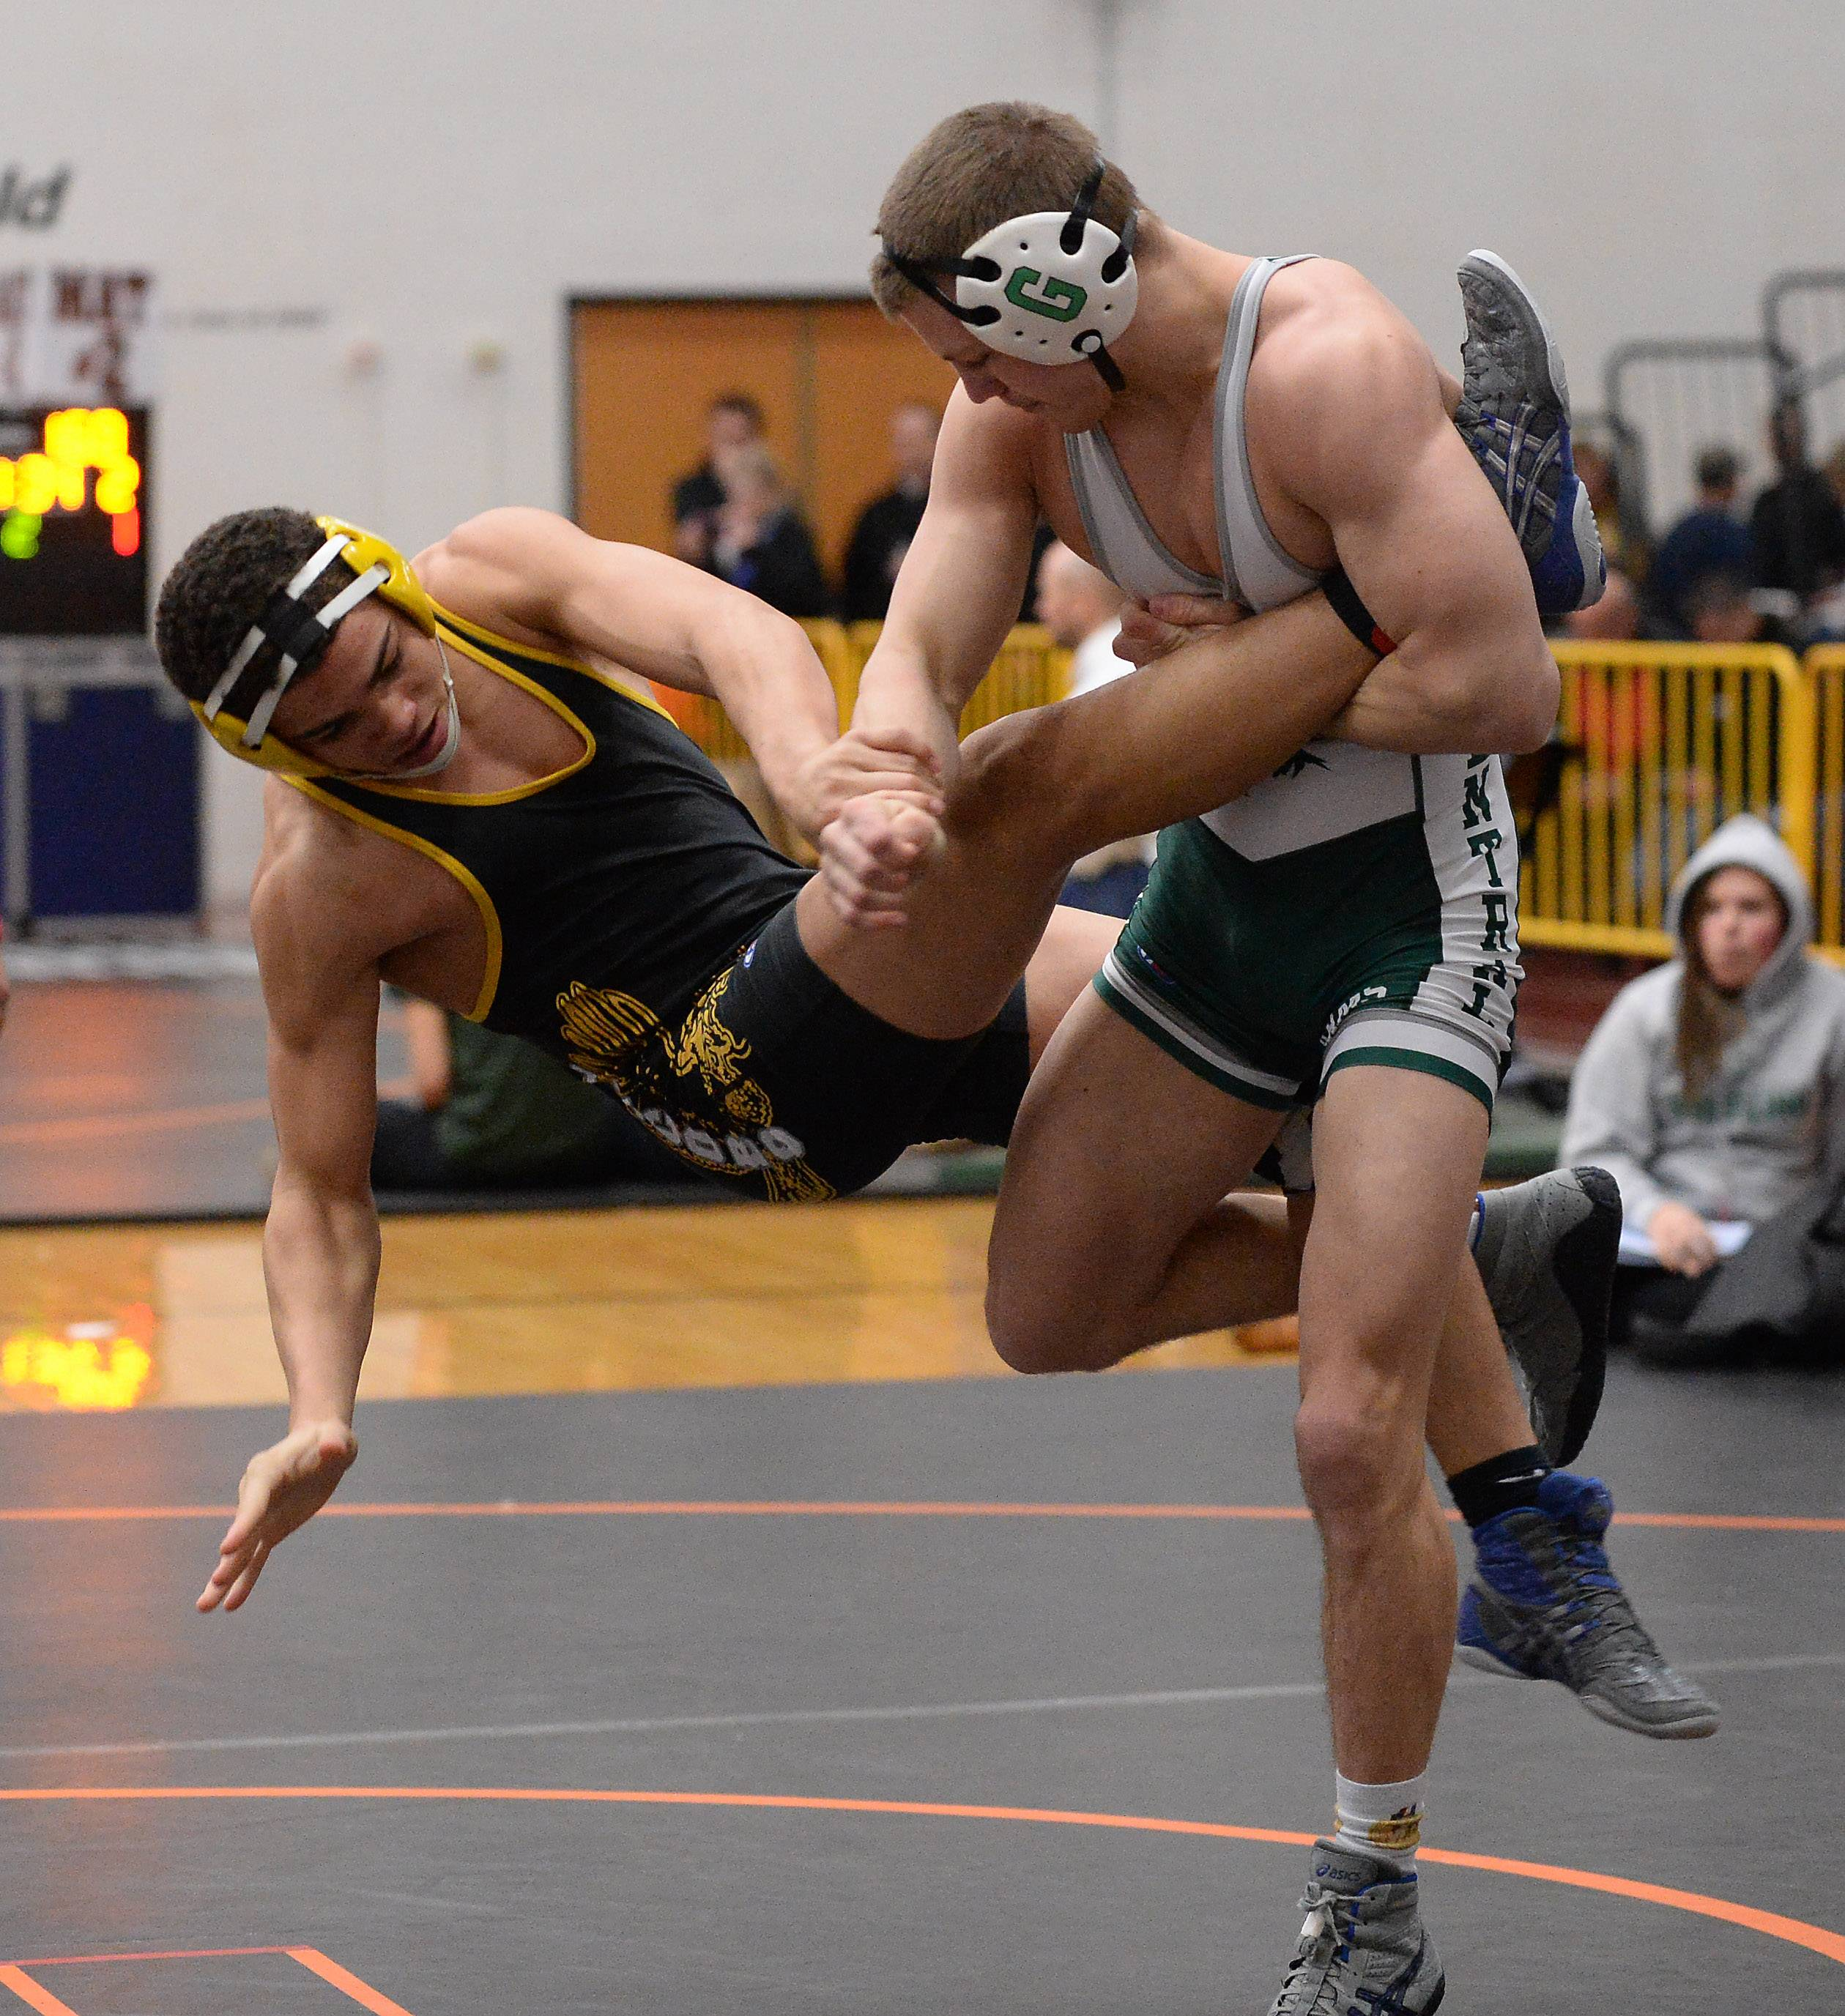 Grayslake Central's Jon Makey overpowers Loren Strickland of Jacobs in the 160 weight class for the win at the 2015 Fox Valley Conference Wrestling Tournament at McHenry High School.